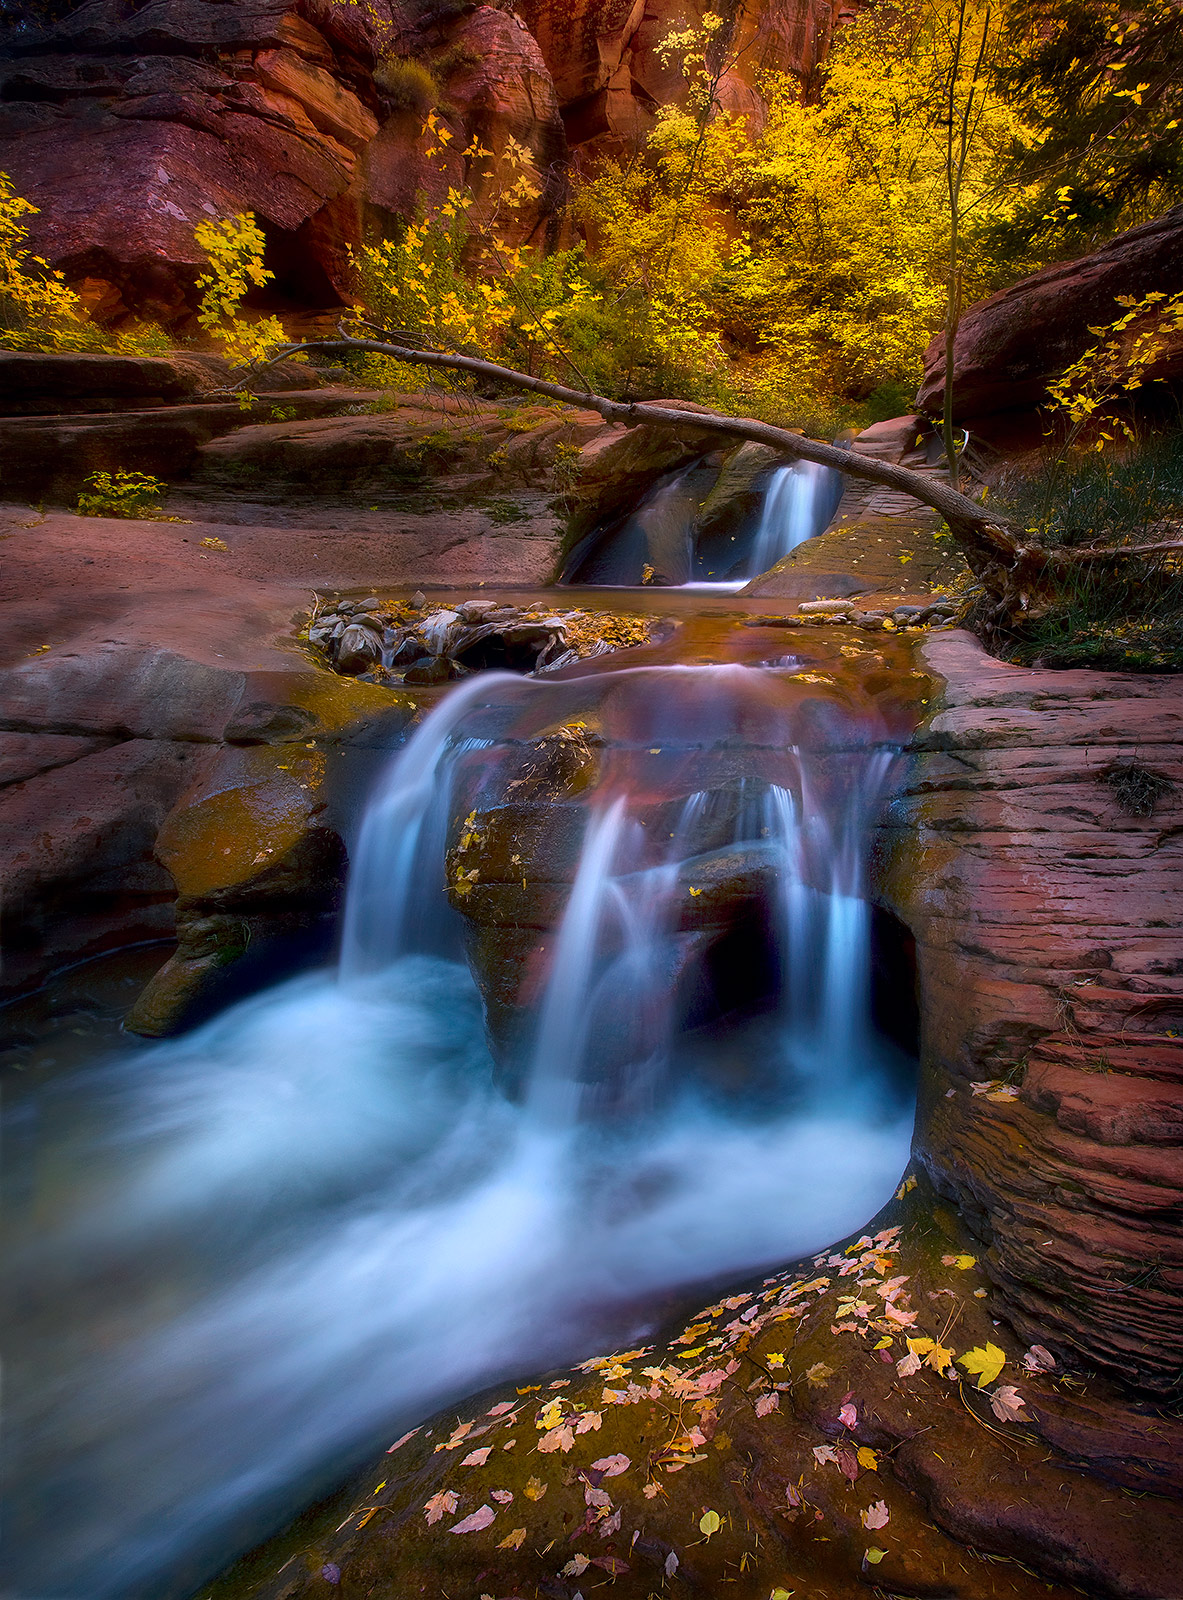 This rarely photographed canyon just outside Cedar City in southern Utah has some of the most beautiful slot canyon falls I've...